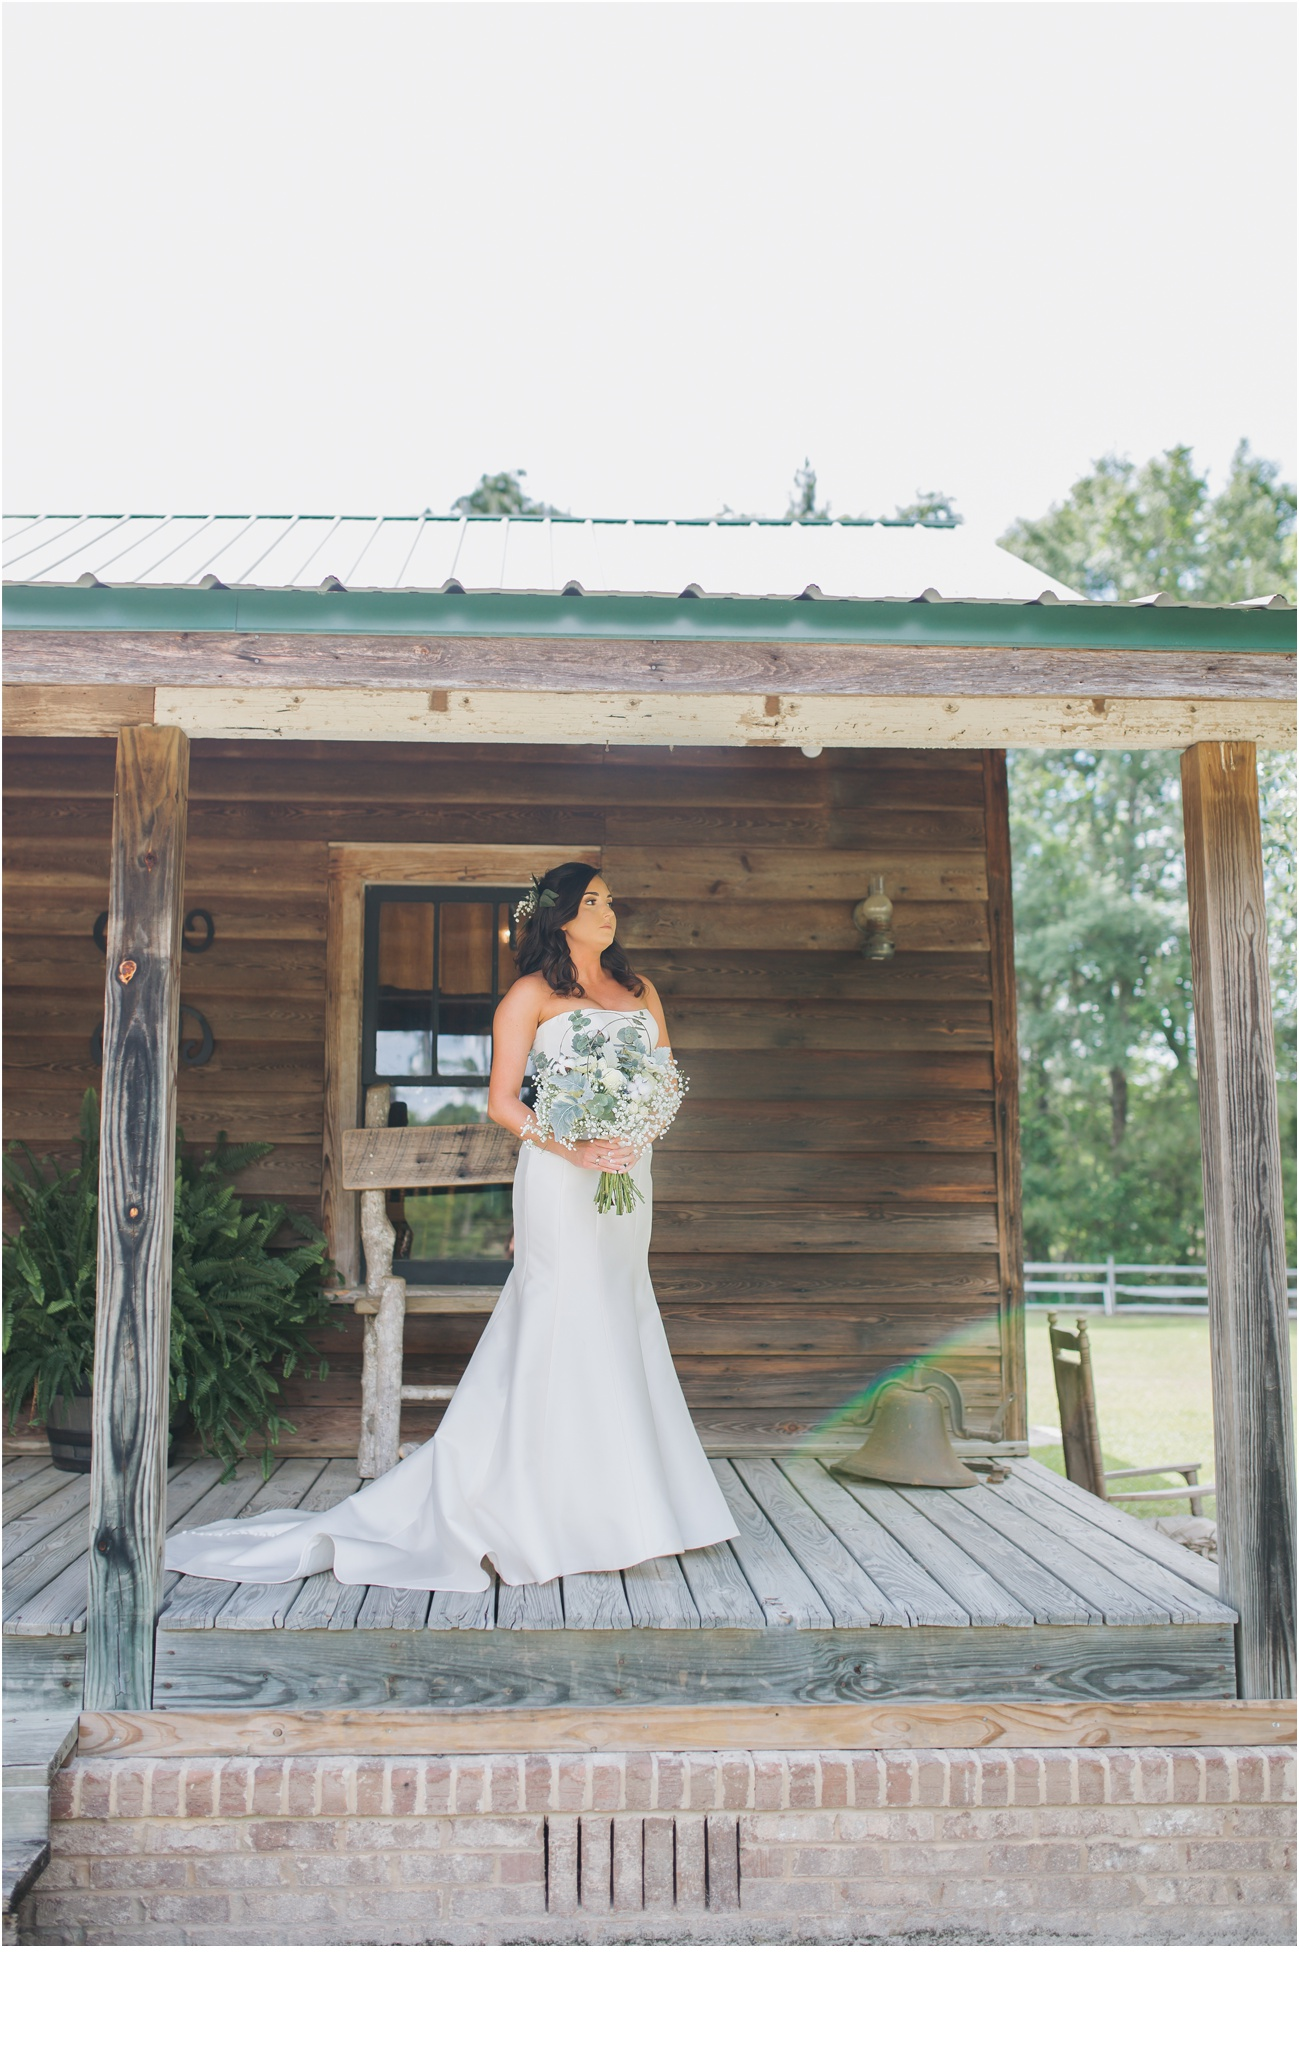 Rainey_Gregg_Photography_St._Simons_Island_Georgia_California_Wedding_Portrait_Photography_0897.jpg